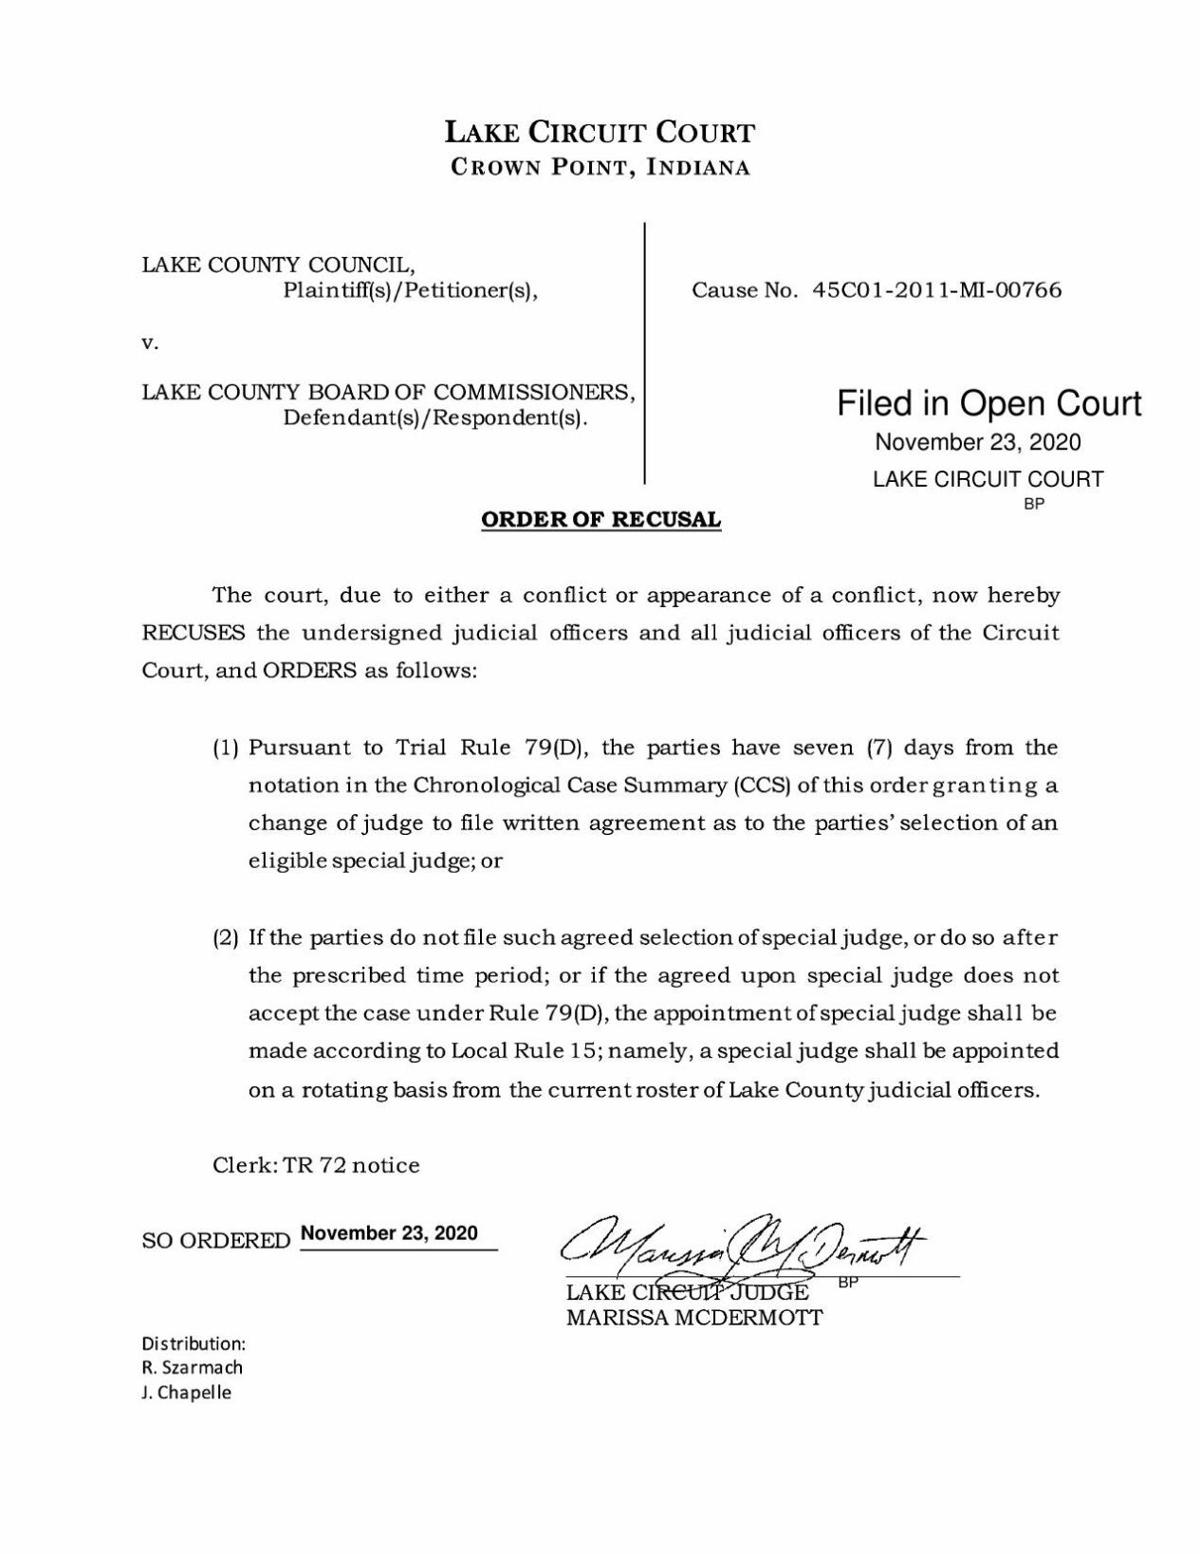 Judge McDermott recusal in Lake County Council v. Lake County Commissioners